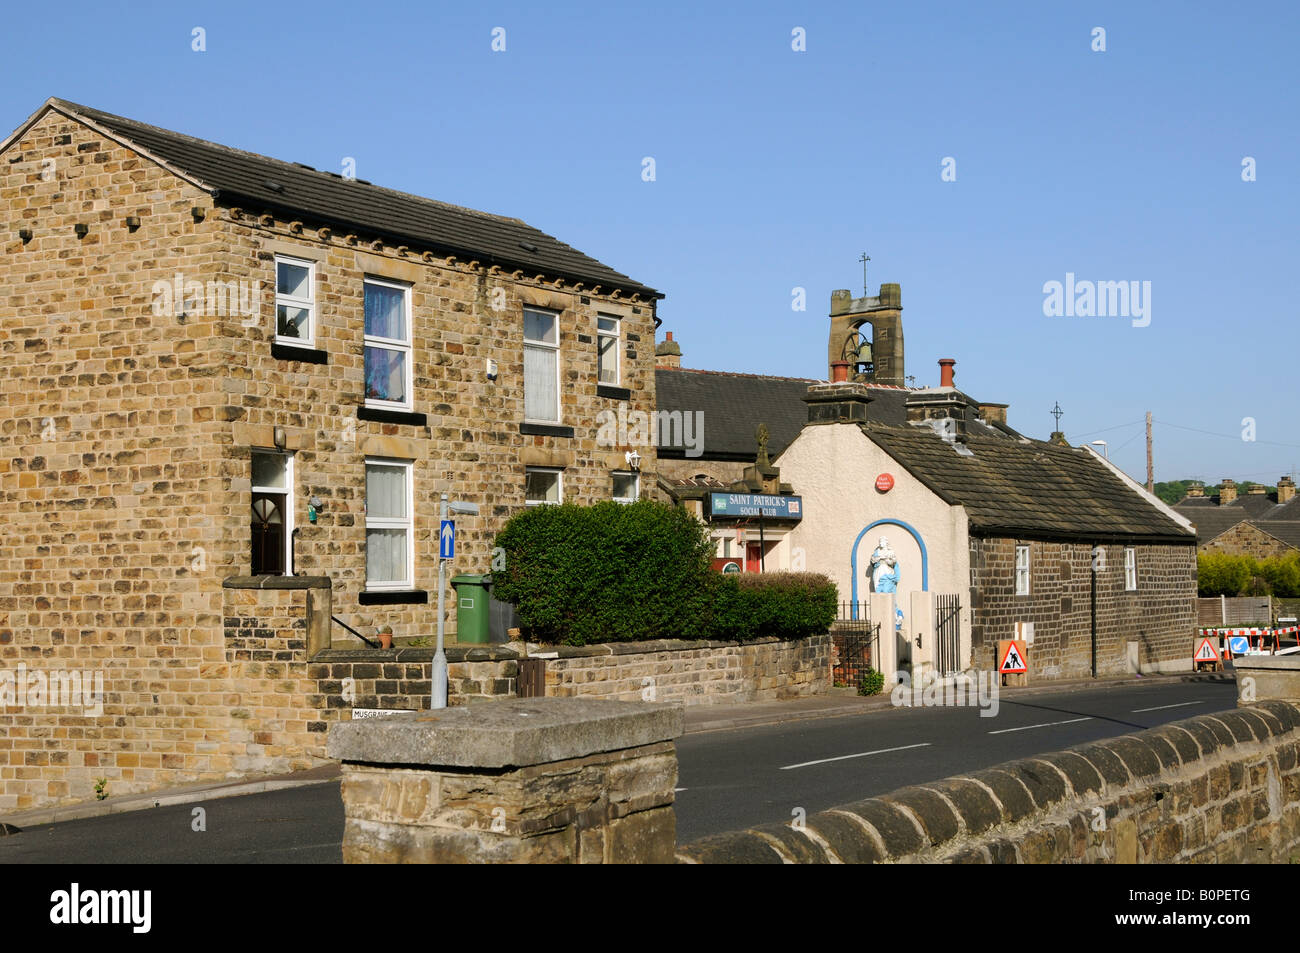 The old Catholic Church built in 1905 on Low Lane Birstall West Yorkshire - Stock Image